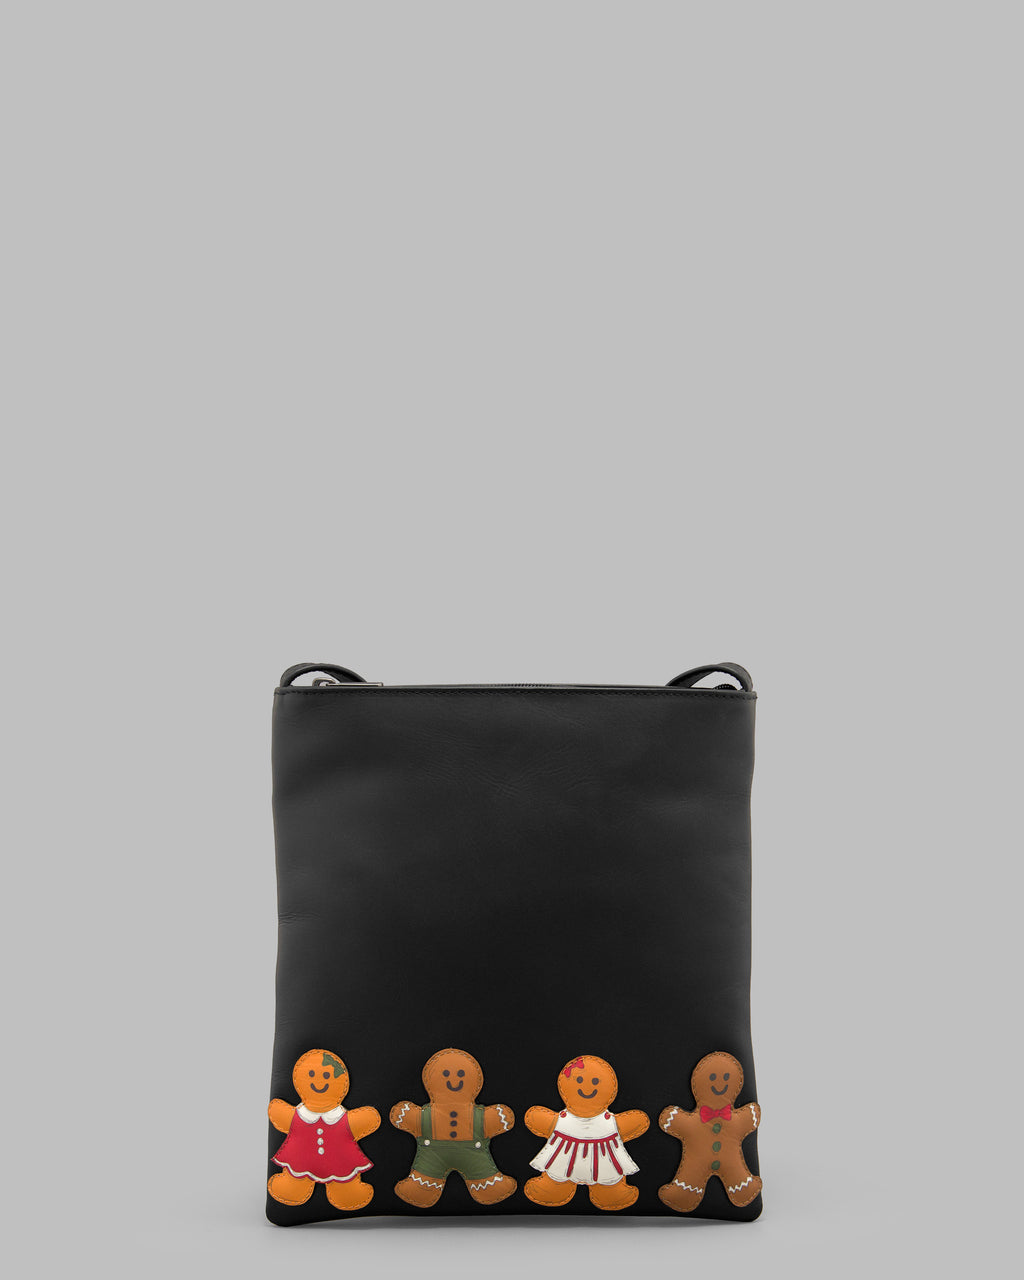 Gingerbread Gang Black Leather Cross Body Bag A